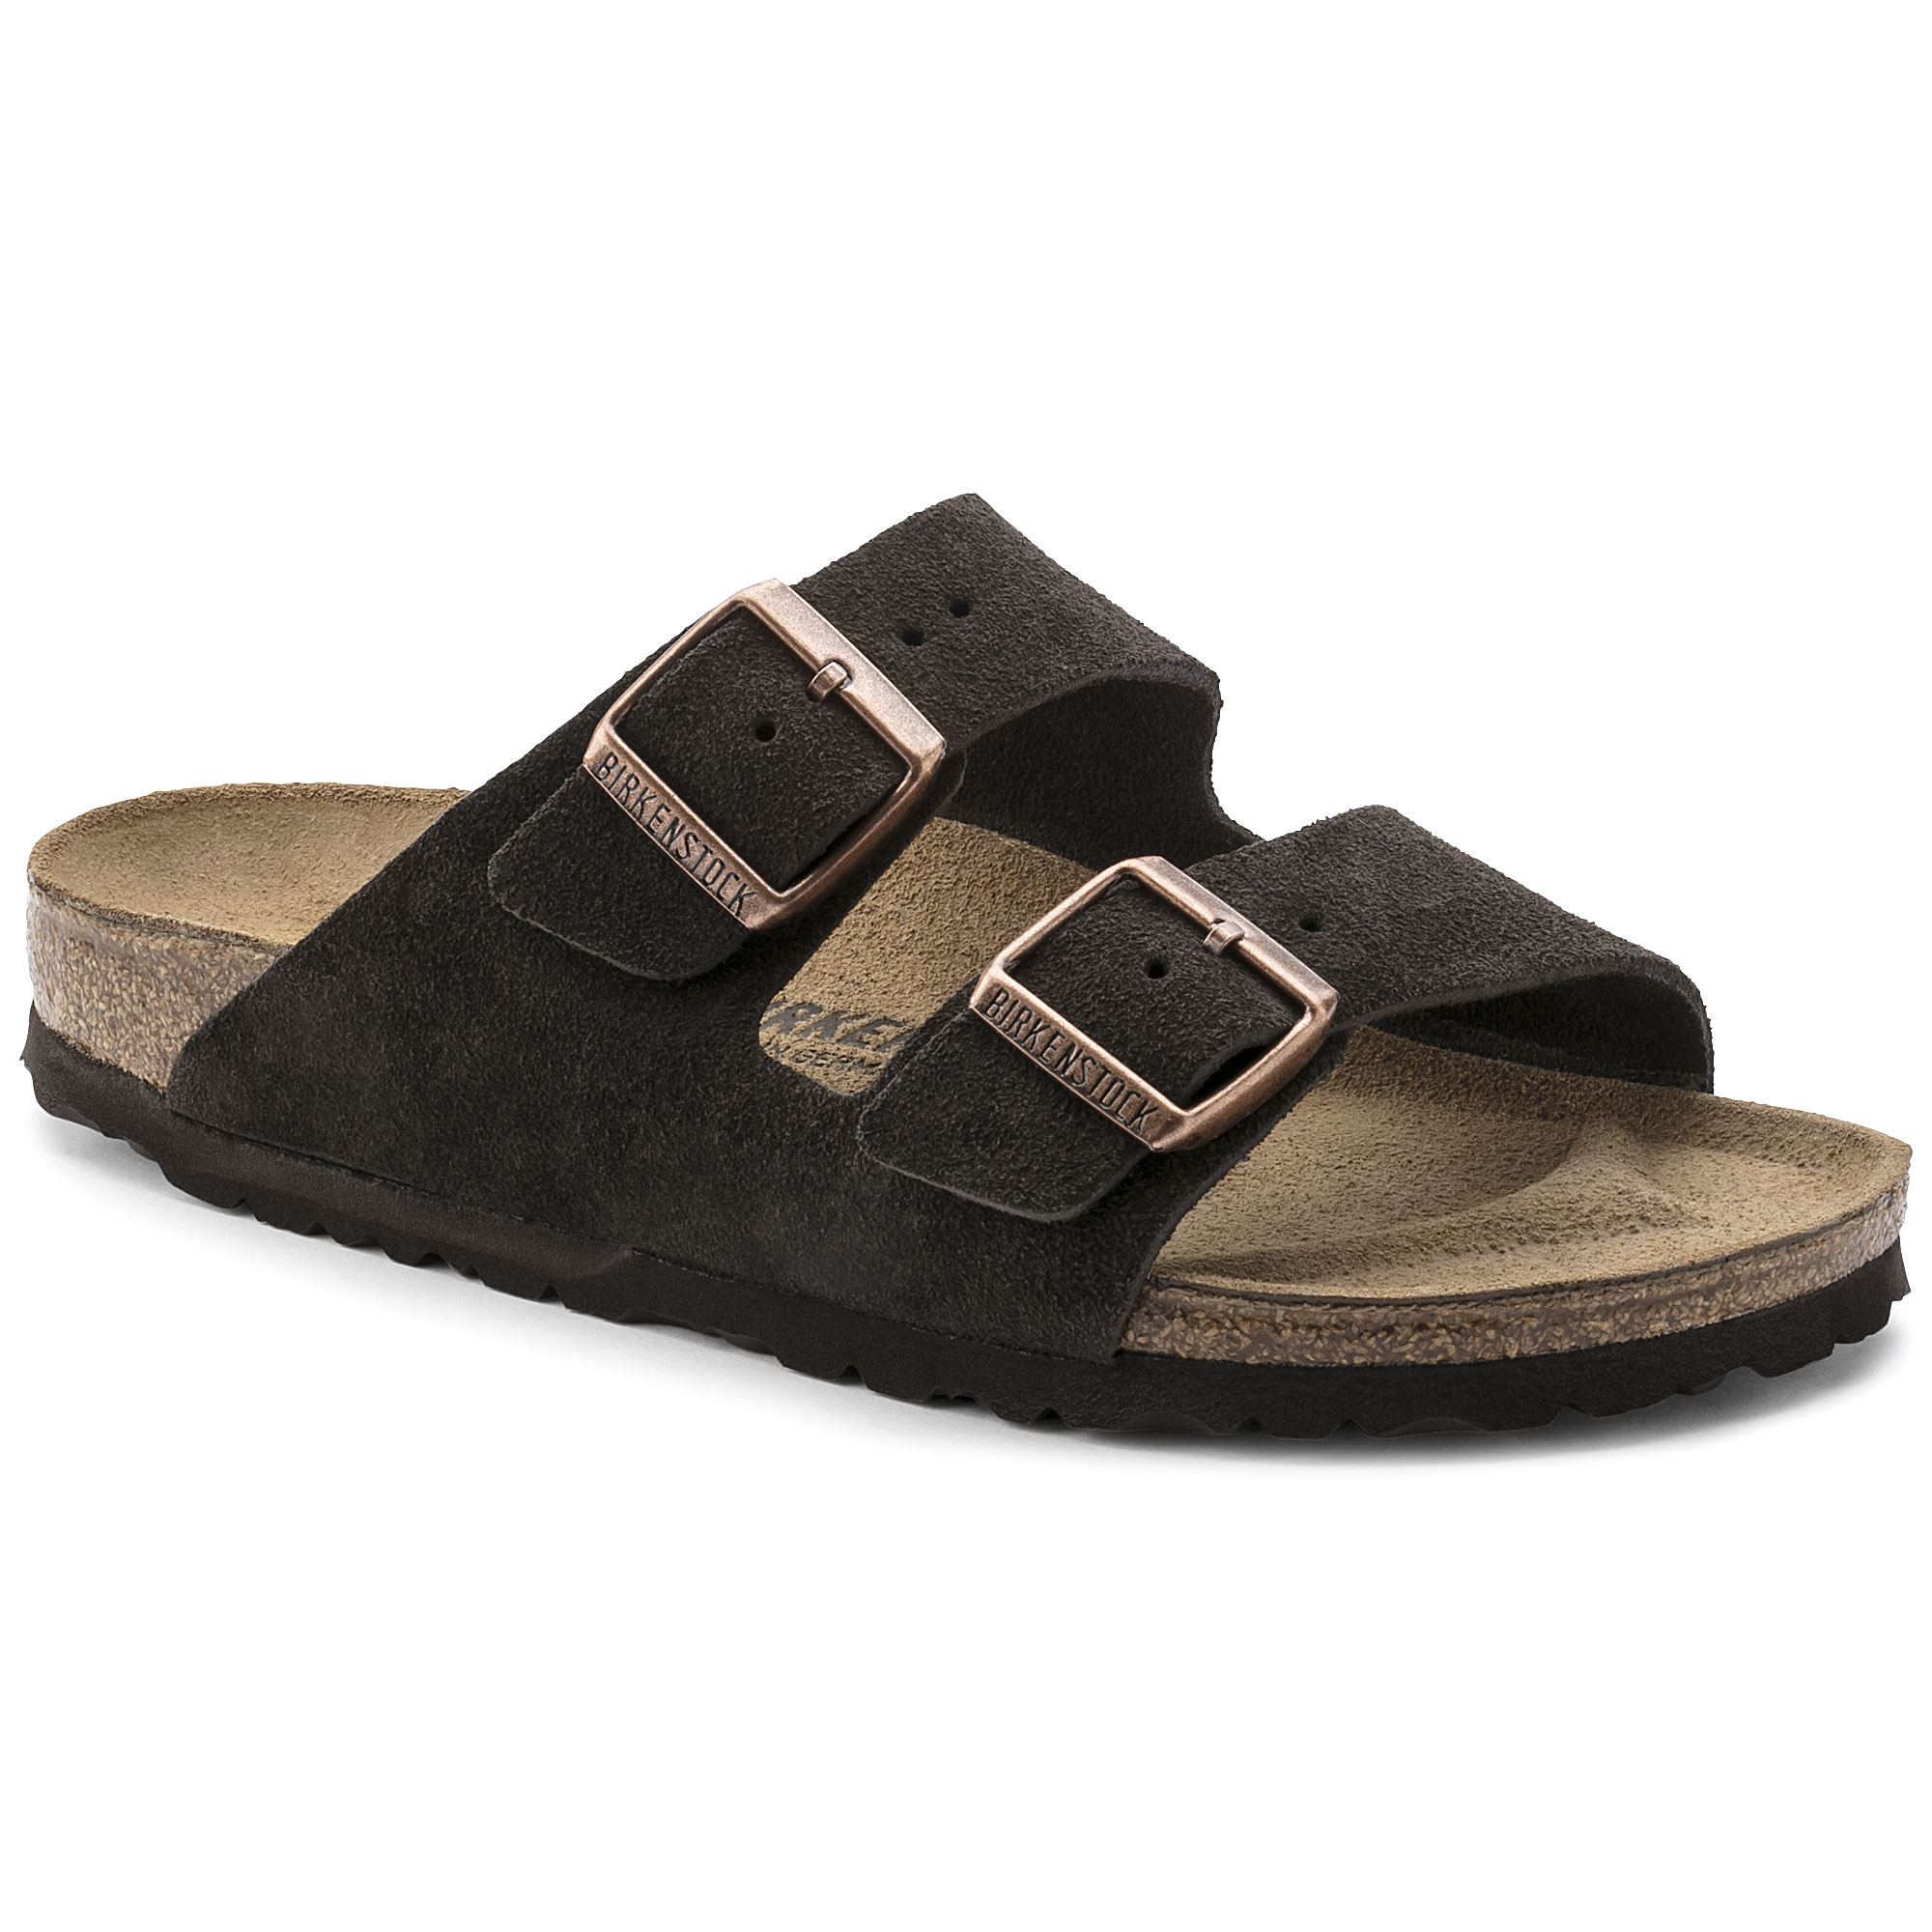 86f5ad585ac3f6 Arizona Suede Leather Mocha